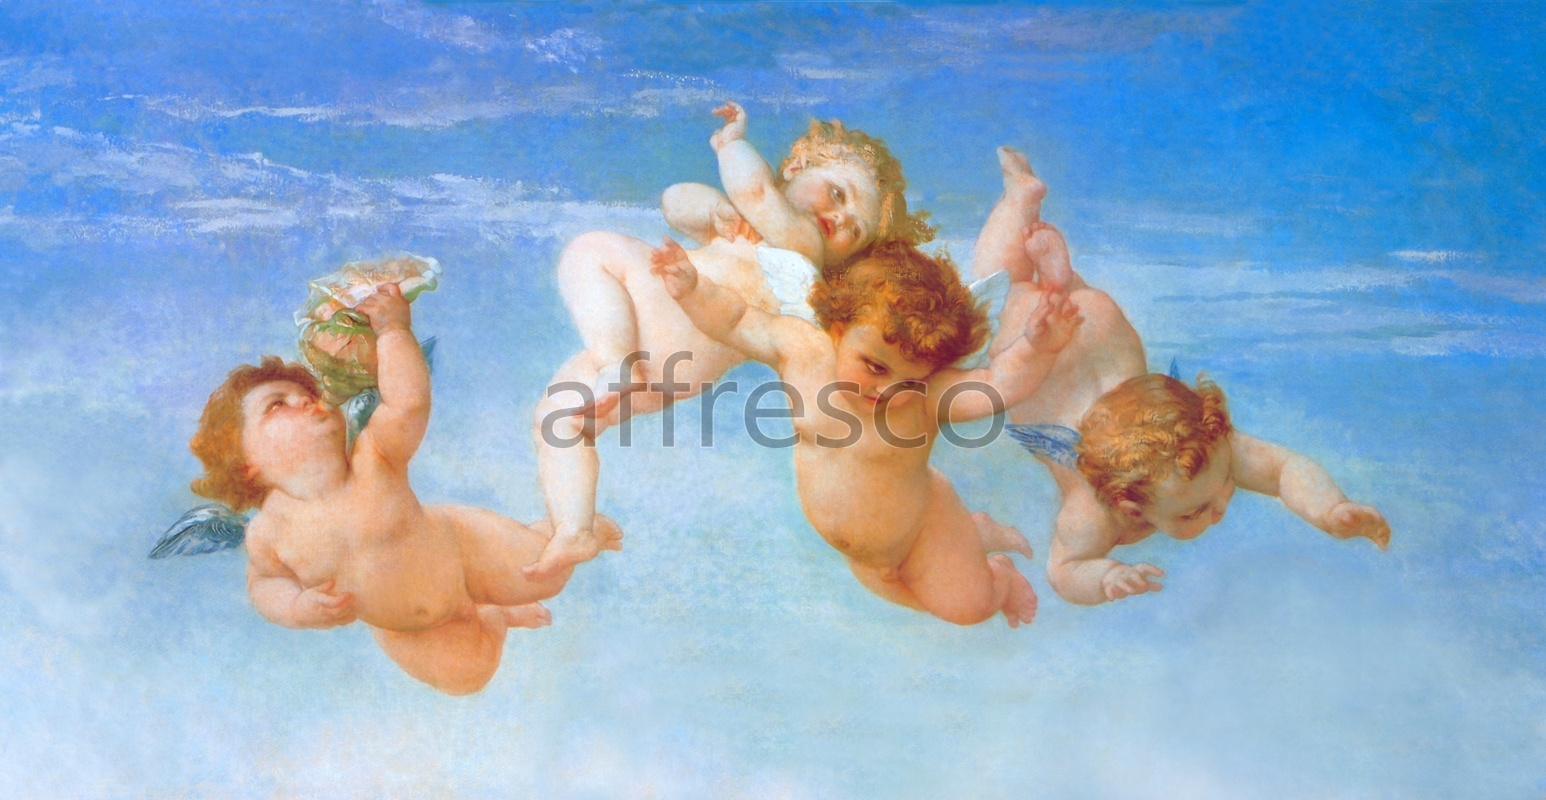 3178 | Classic Scenes | angels in the sky | Affresco Factory